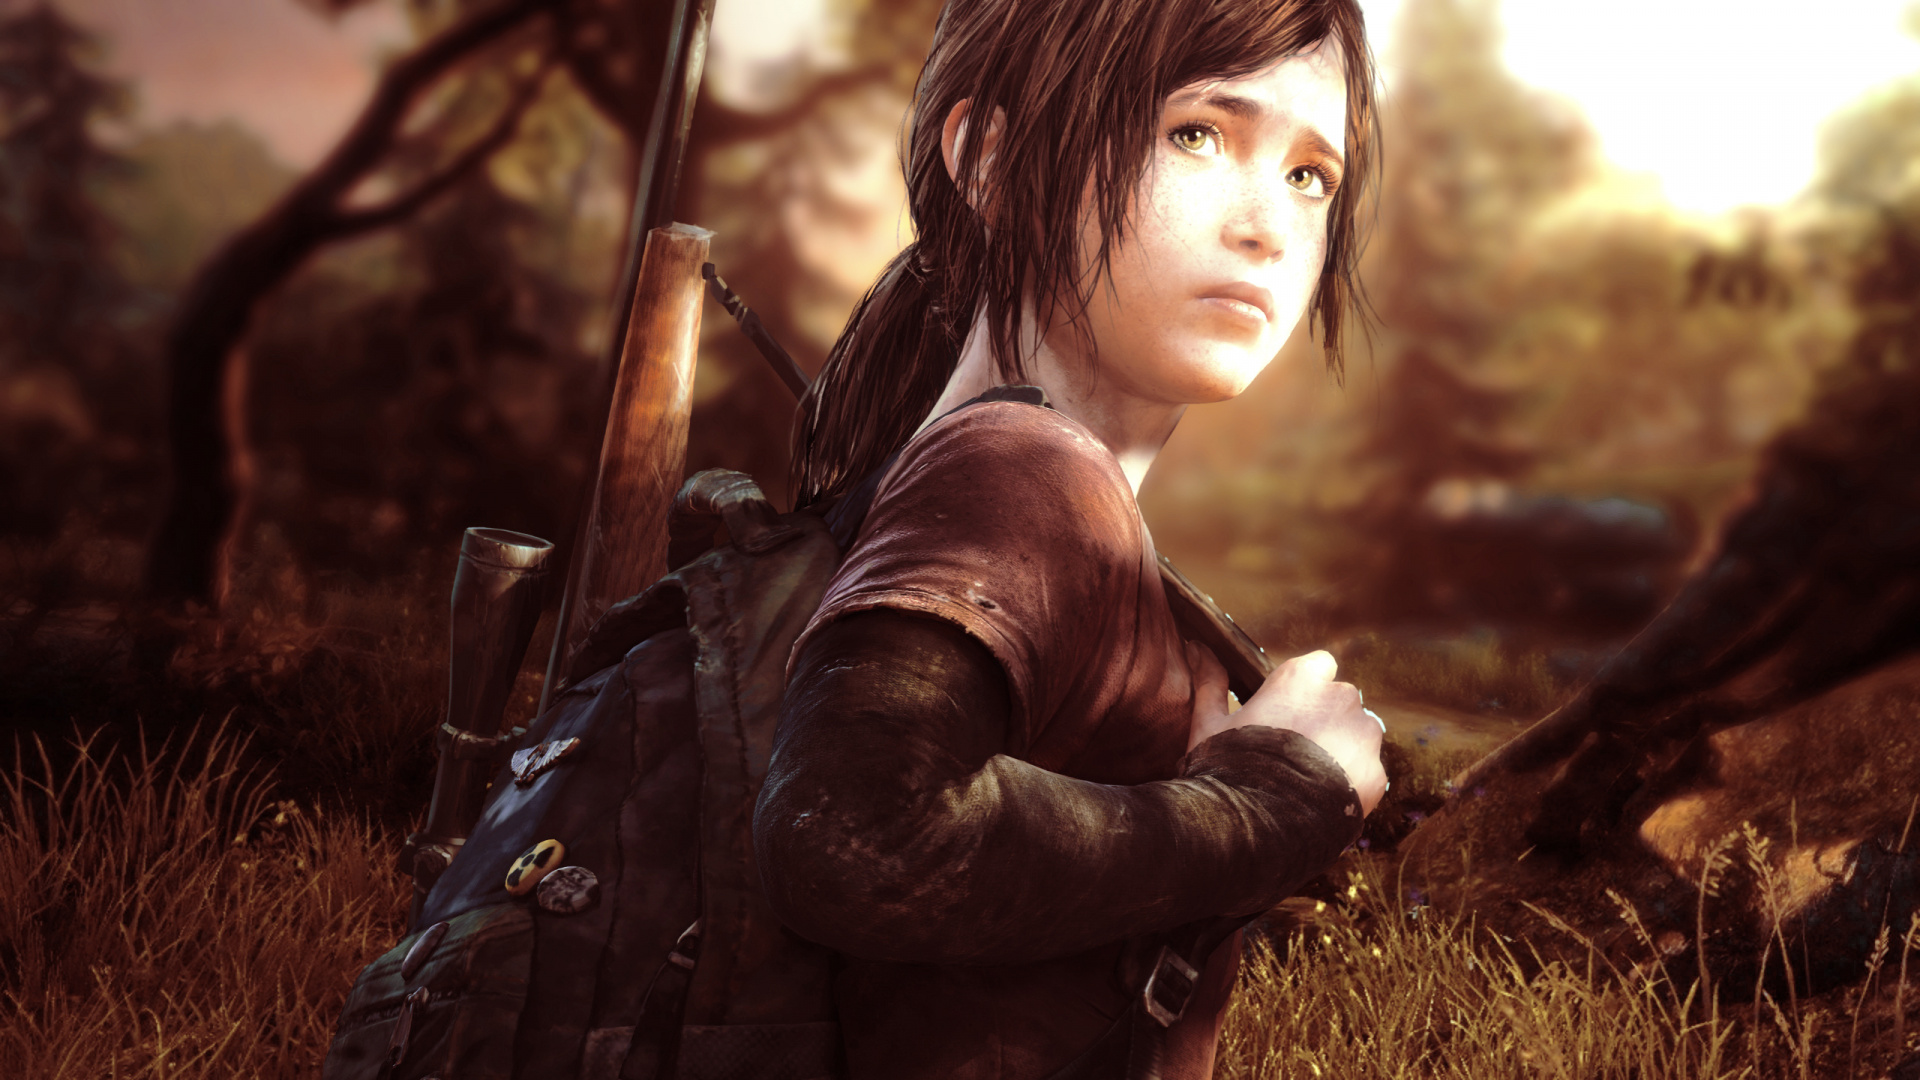 Wallpaper Ellie, Video Game, The Last Of Us - Last Of Us Ellie , HD Wallpaper & Backgrounds